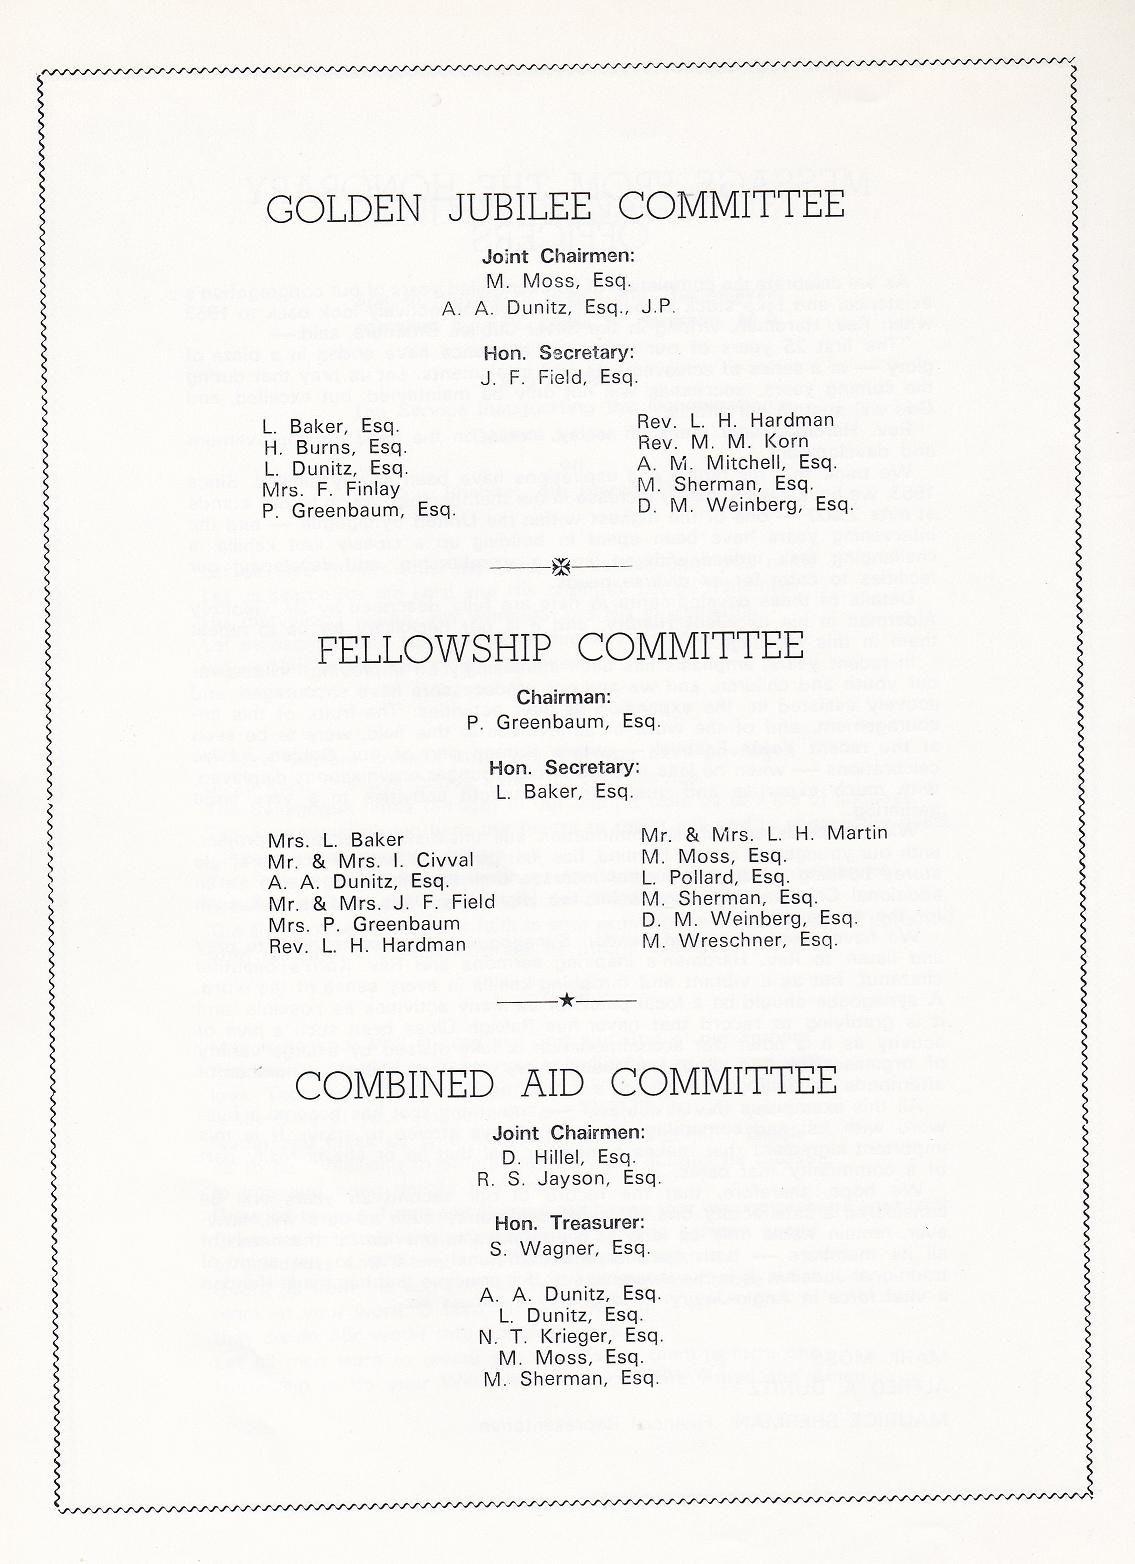 Jcr uk hendon synagogue goldern jubilee brochure 1928 1978 the above pages were followed by 50 pages of advertisements or greetings which have not been not been reproduced here kristyandbryce Choice Image